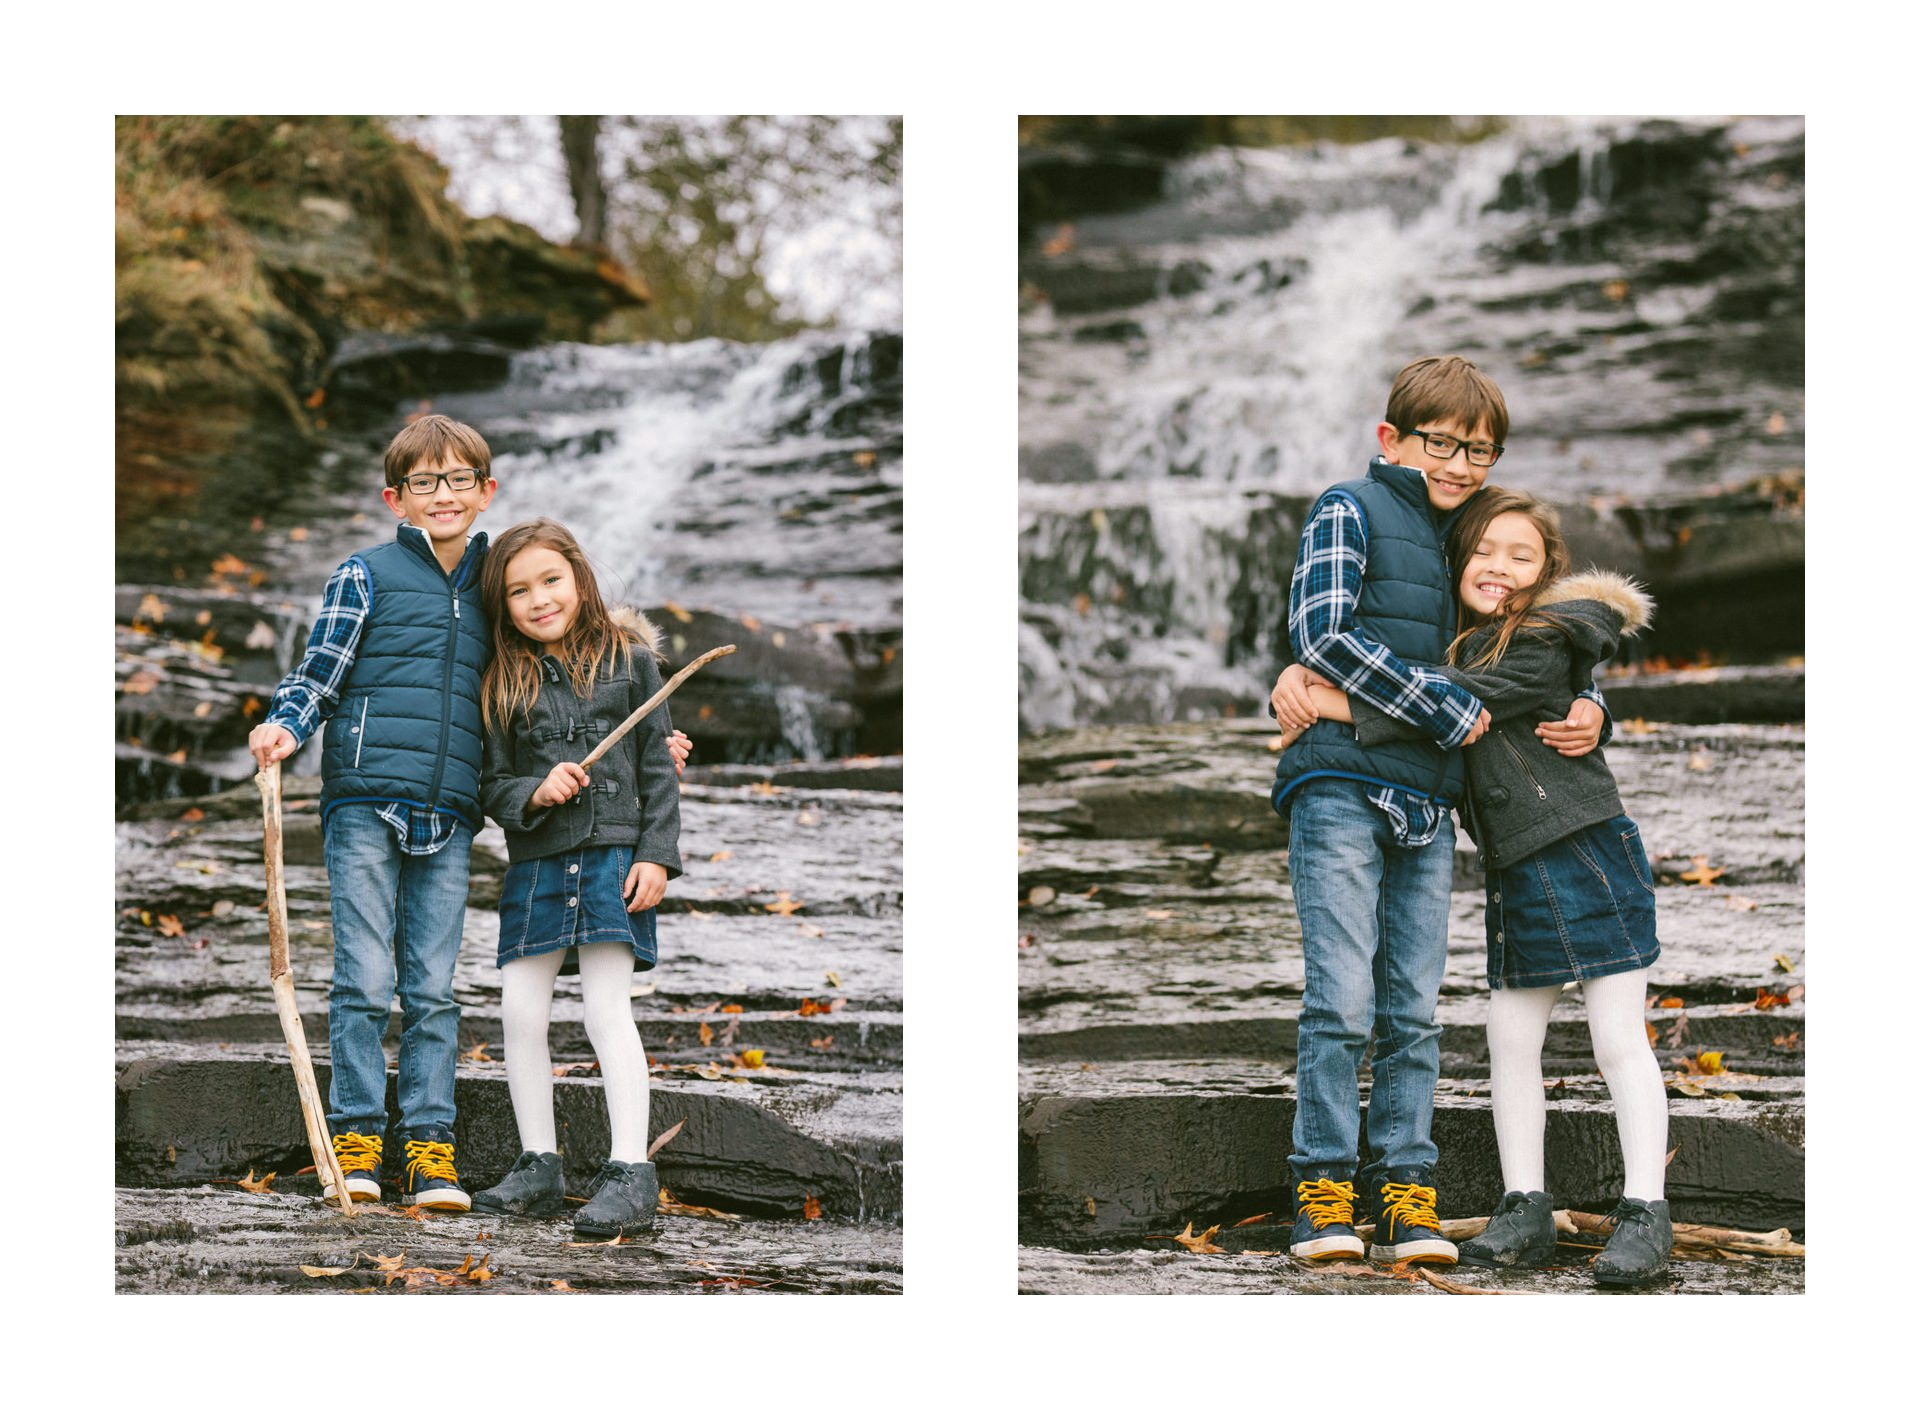 Westlake Ohio Family Portrait Photographer The Roths 57.jpg